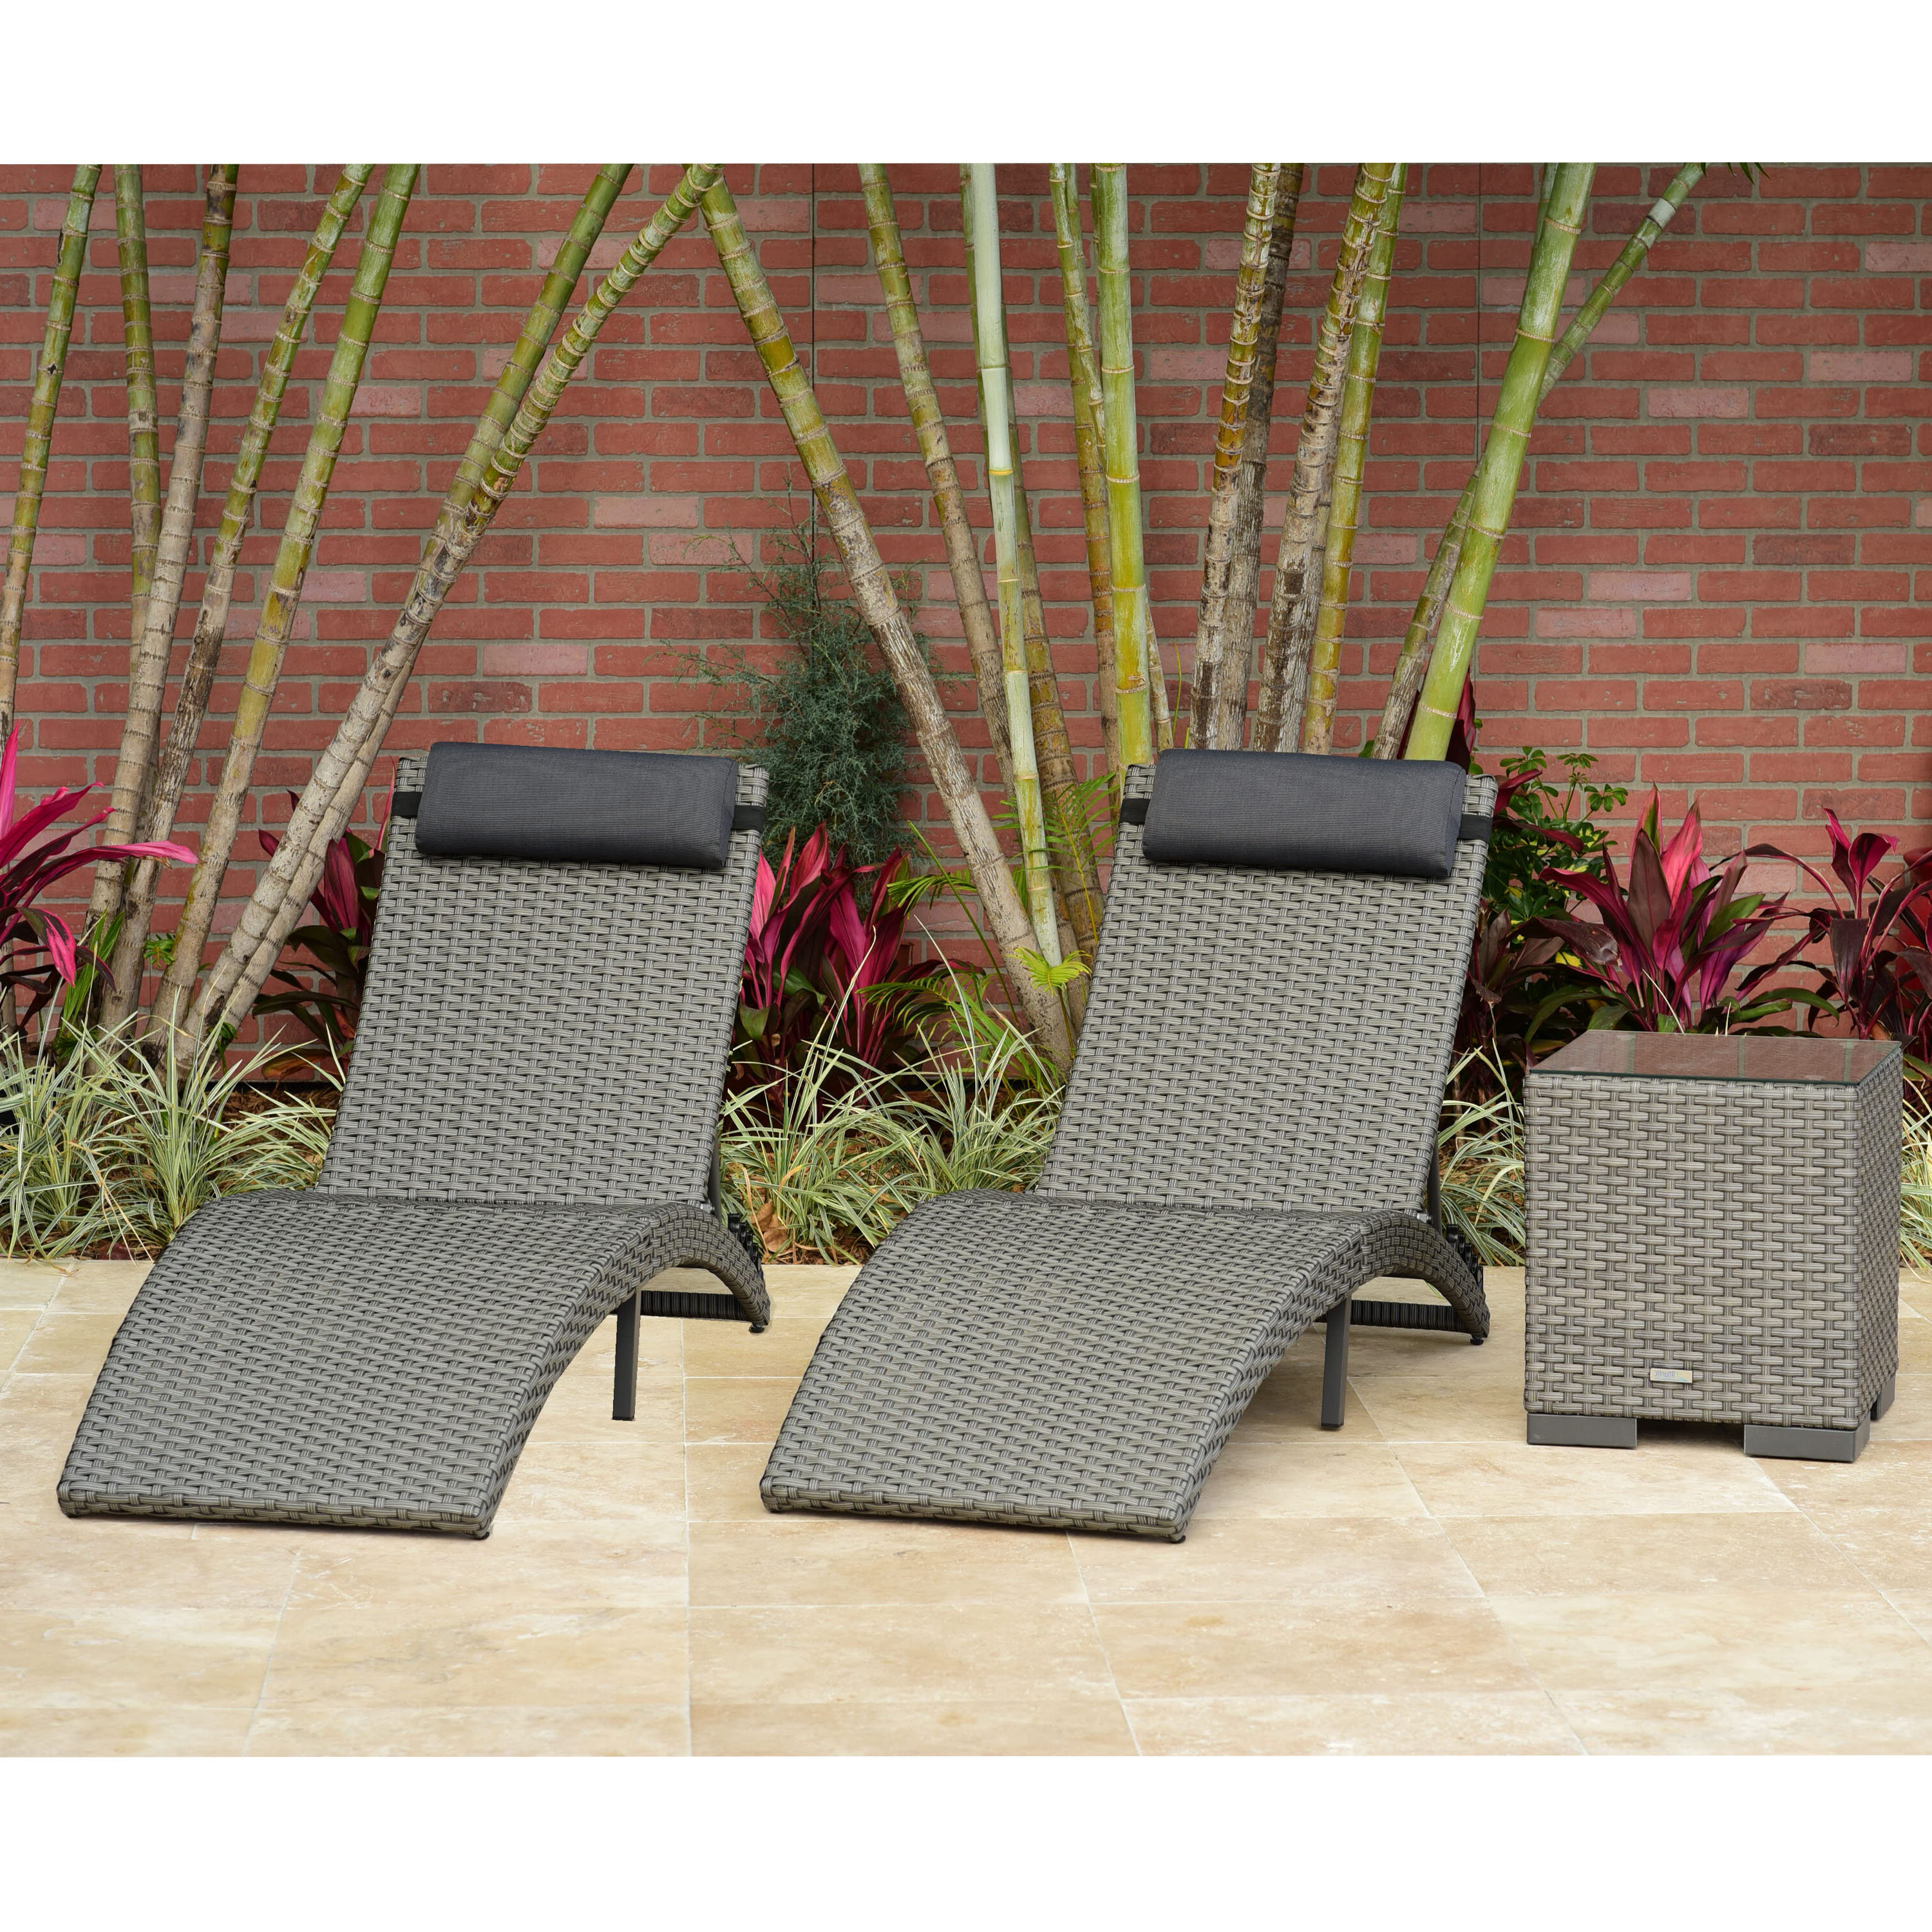 Outdoor 3 Piece Wicker Chaise Lounges And Table Sets For Most Popular Sansom 3 Piece Chaise Lounge Set With Cushion And Table (Gallery 22 of 25)